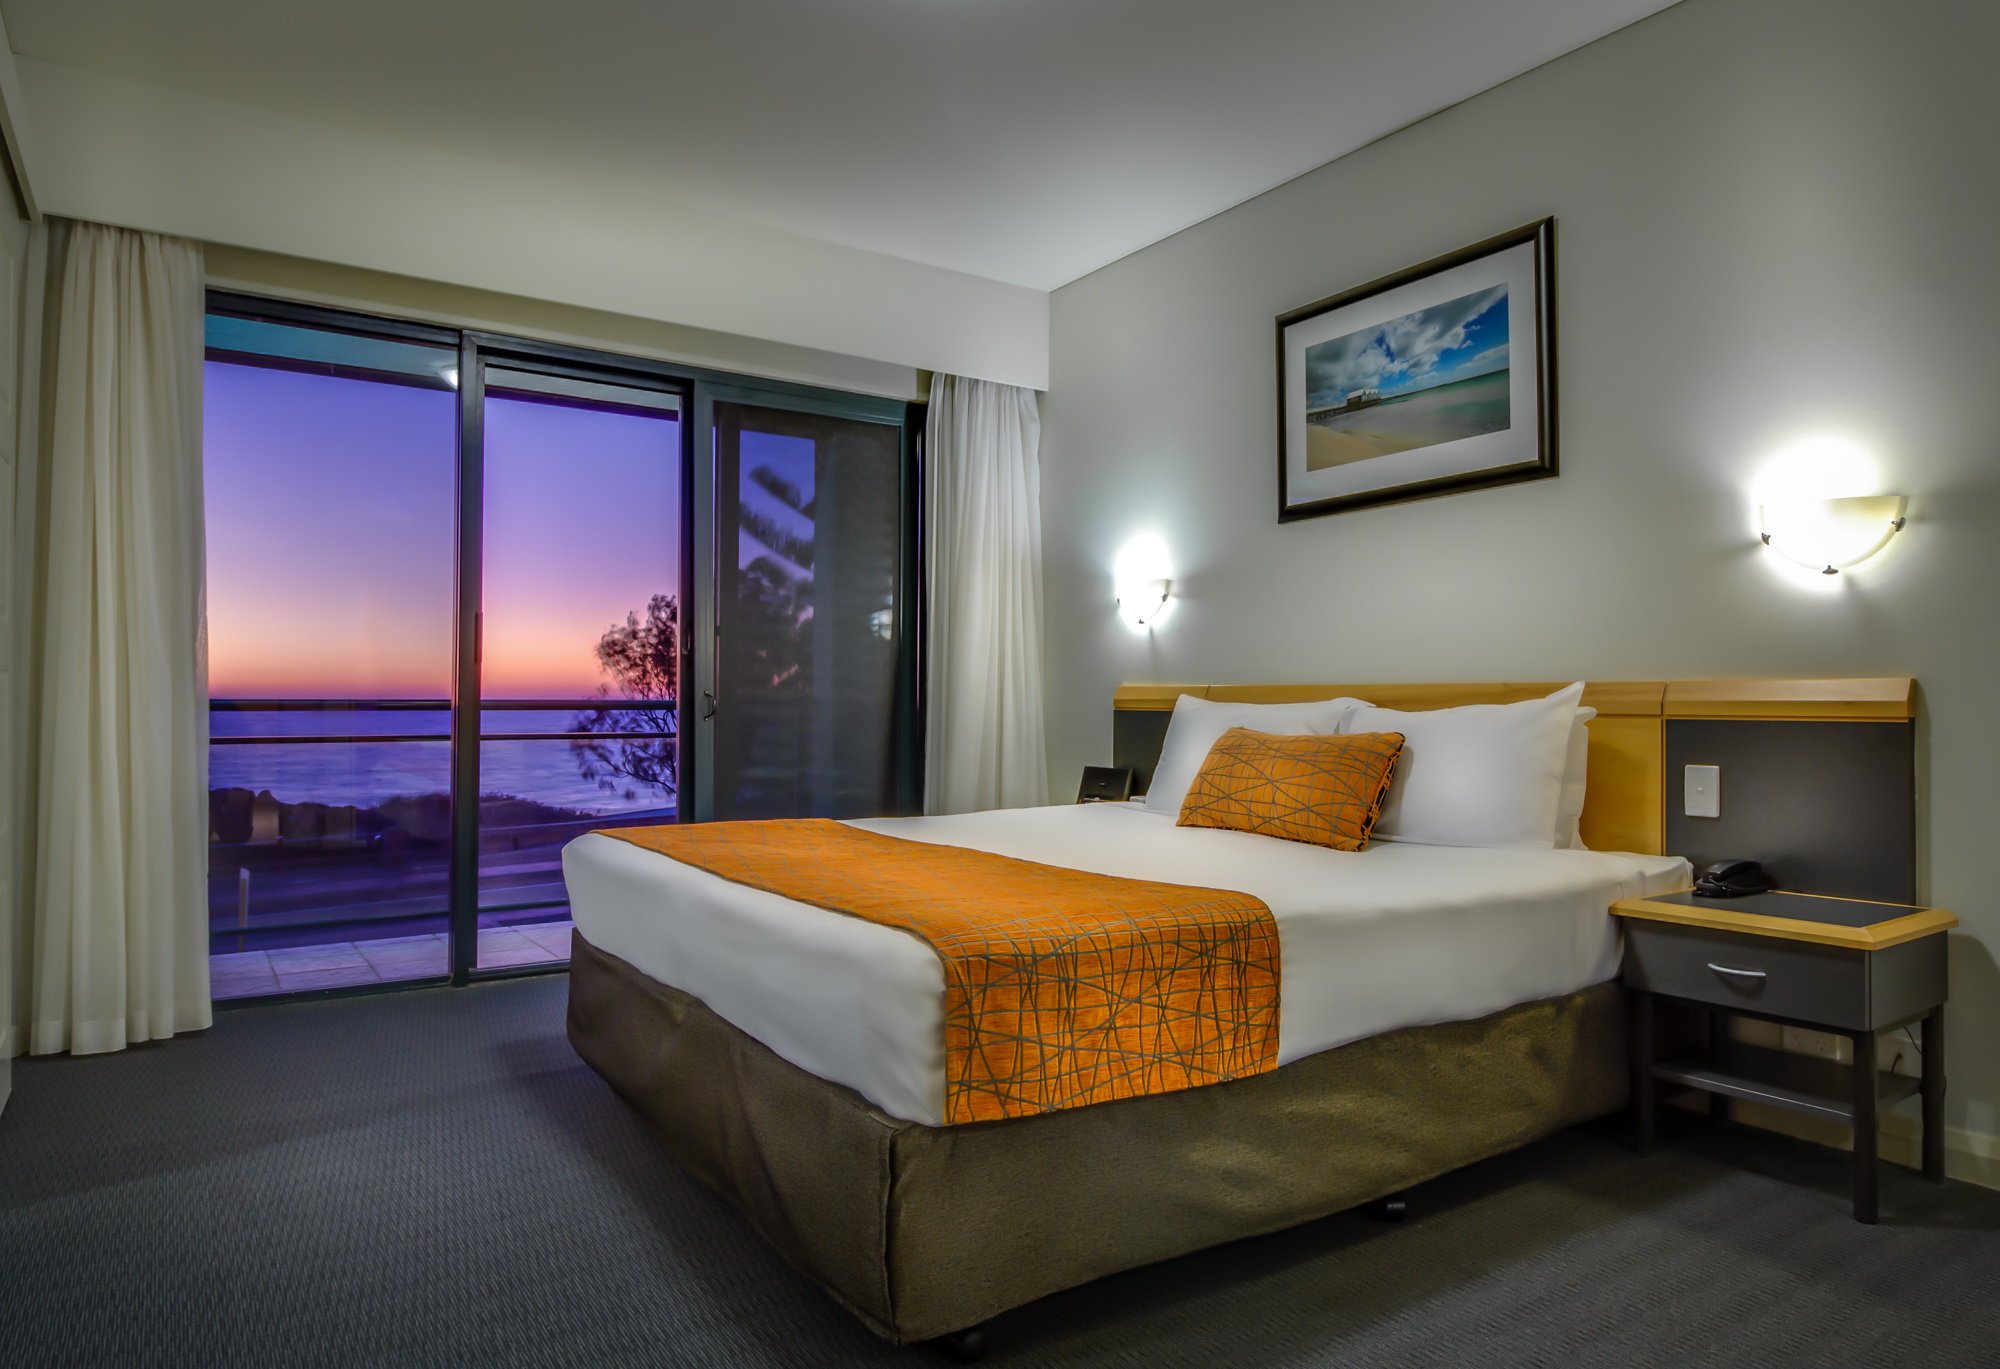 80 rooms and apartments, a short walk to Hillarys Harbour and 76 steps to the beach. Pool, Spa and BBq area with restaurant. This  one-bedroom serviced apartment is 45 sq.m ,  and can sleep 2 people m